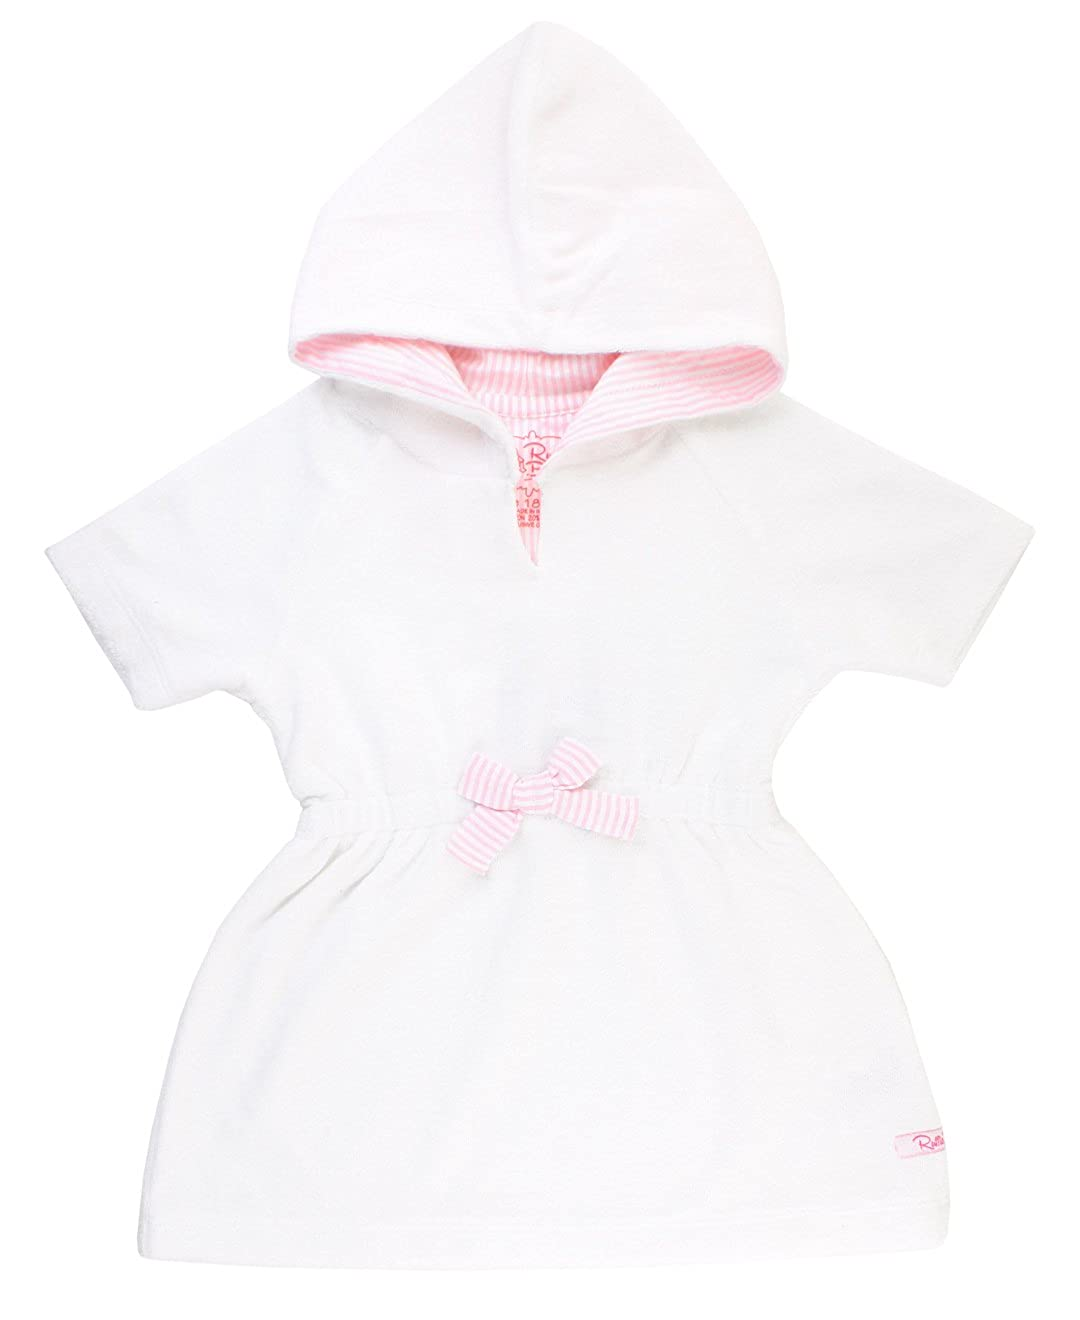 RuffleButts Baby/Toddler Girls Terry Cloth Hoodie Swim Cover Up CUTYYXX-TRRY-SC-BABY